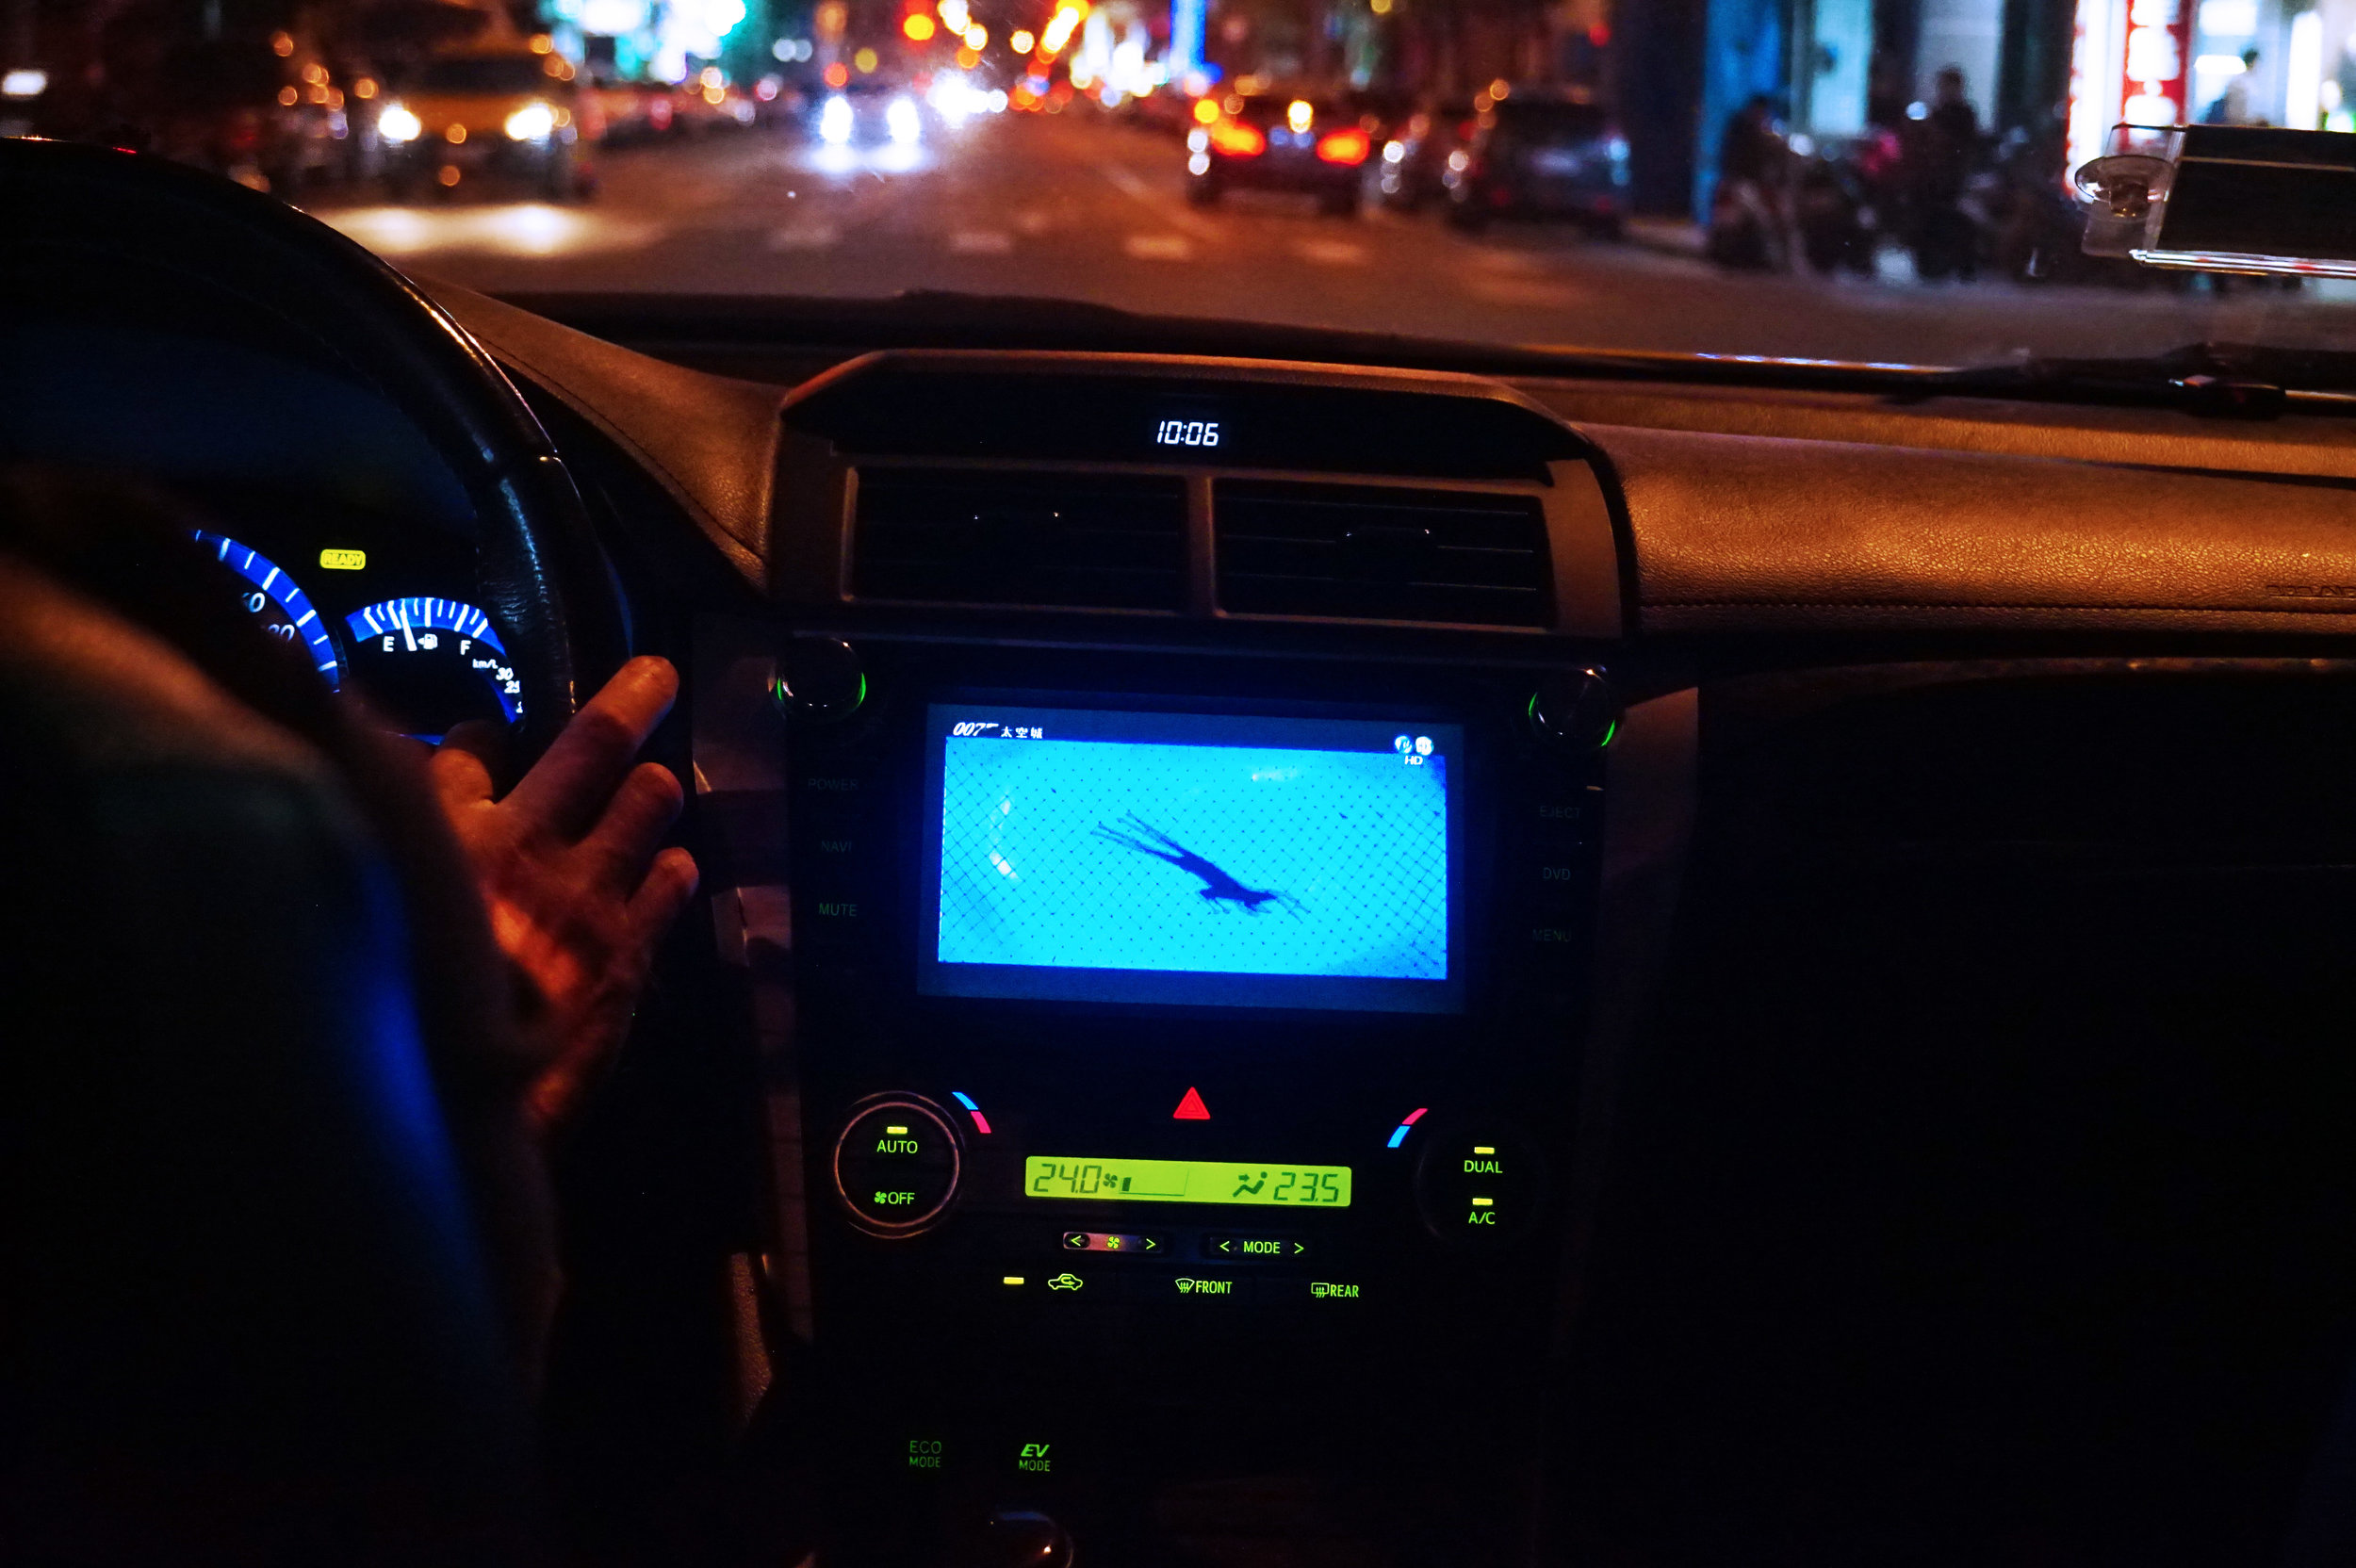 Our taxi driver was literally watching a James Bond movie while driving #safety